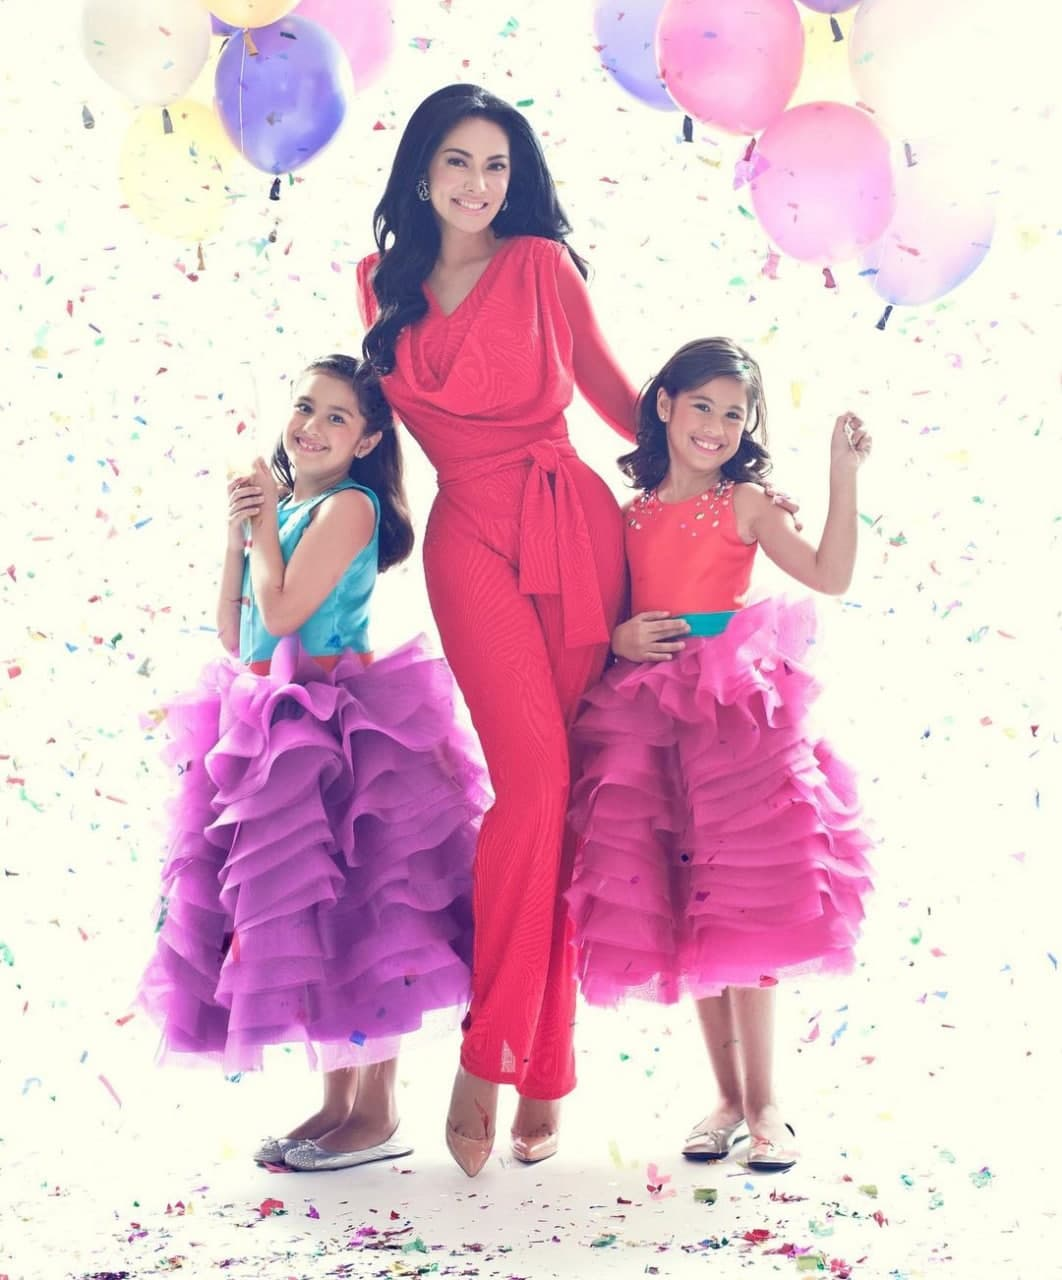 Ruffa and her daughters in a party